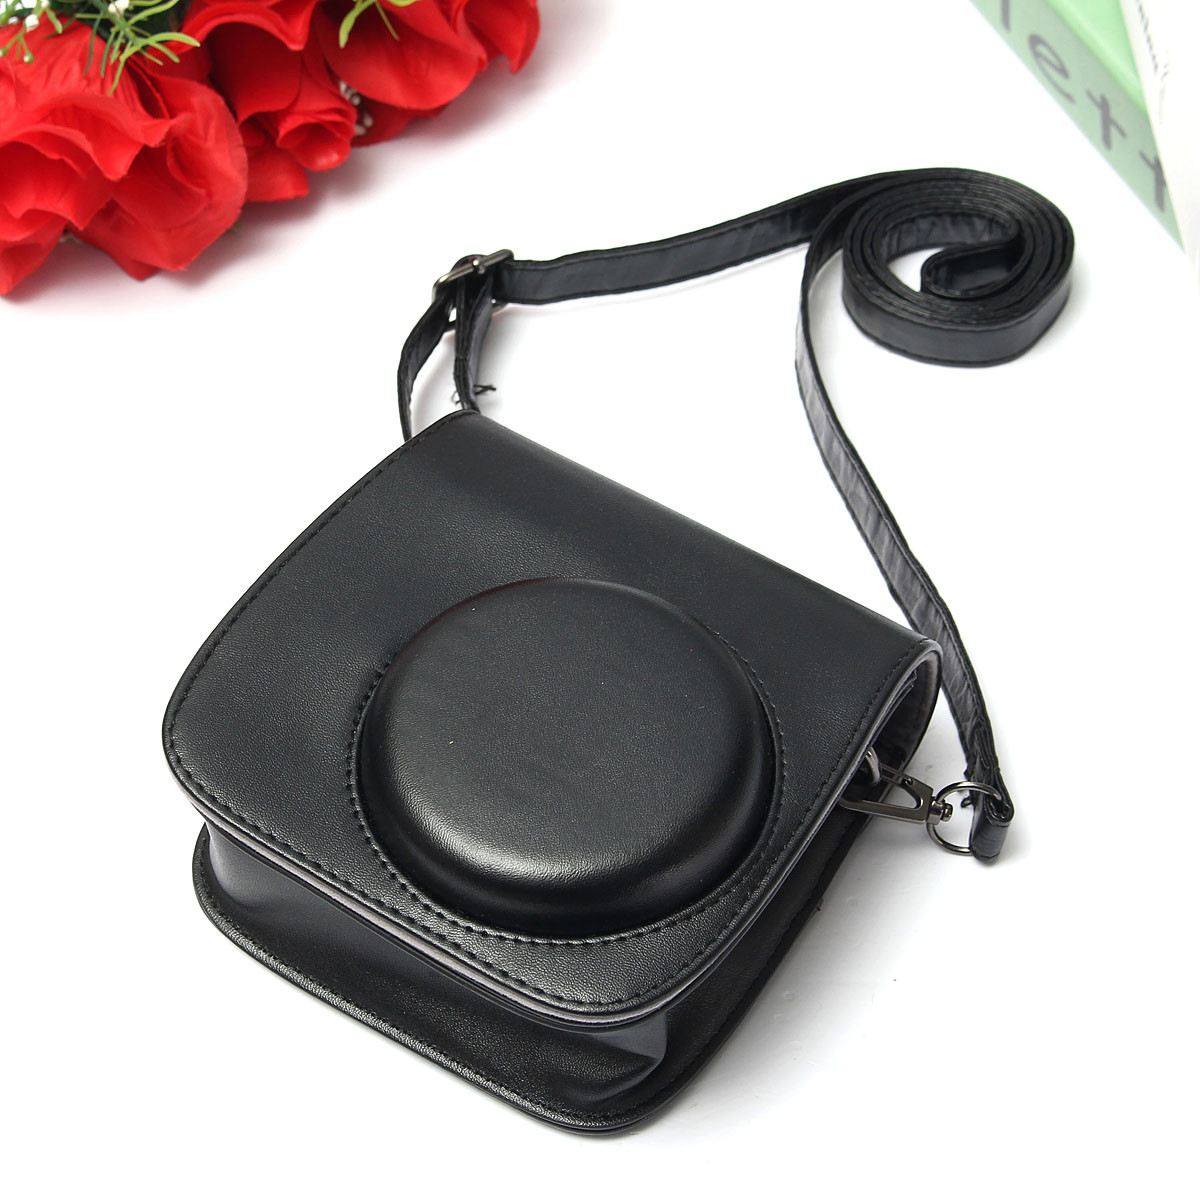 Candy Colorful PU Leather Case Bag Accessory For Polaroid Mini 8 Instant Camera